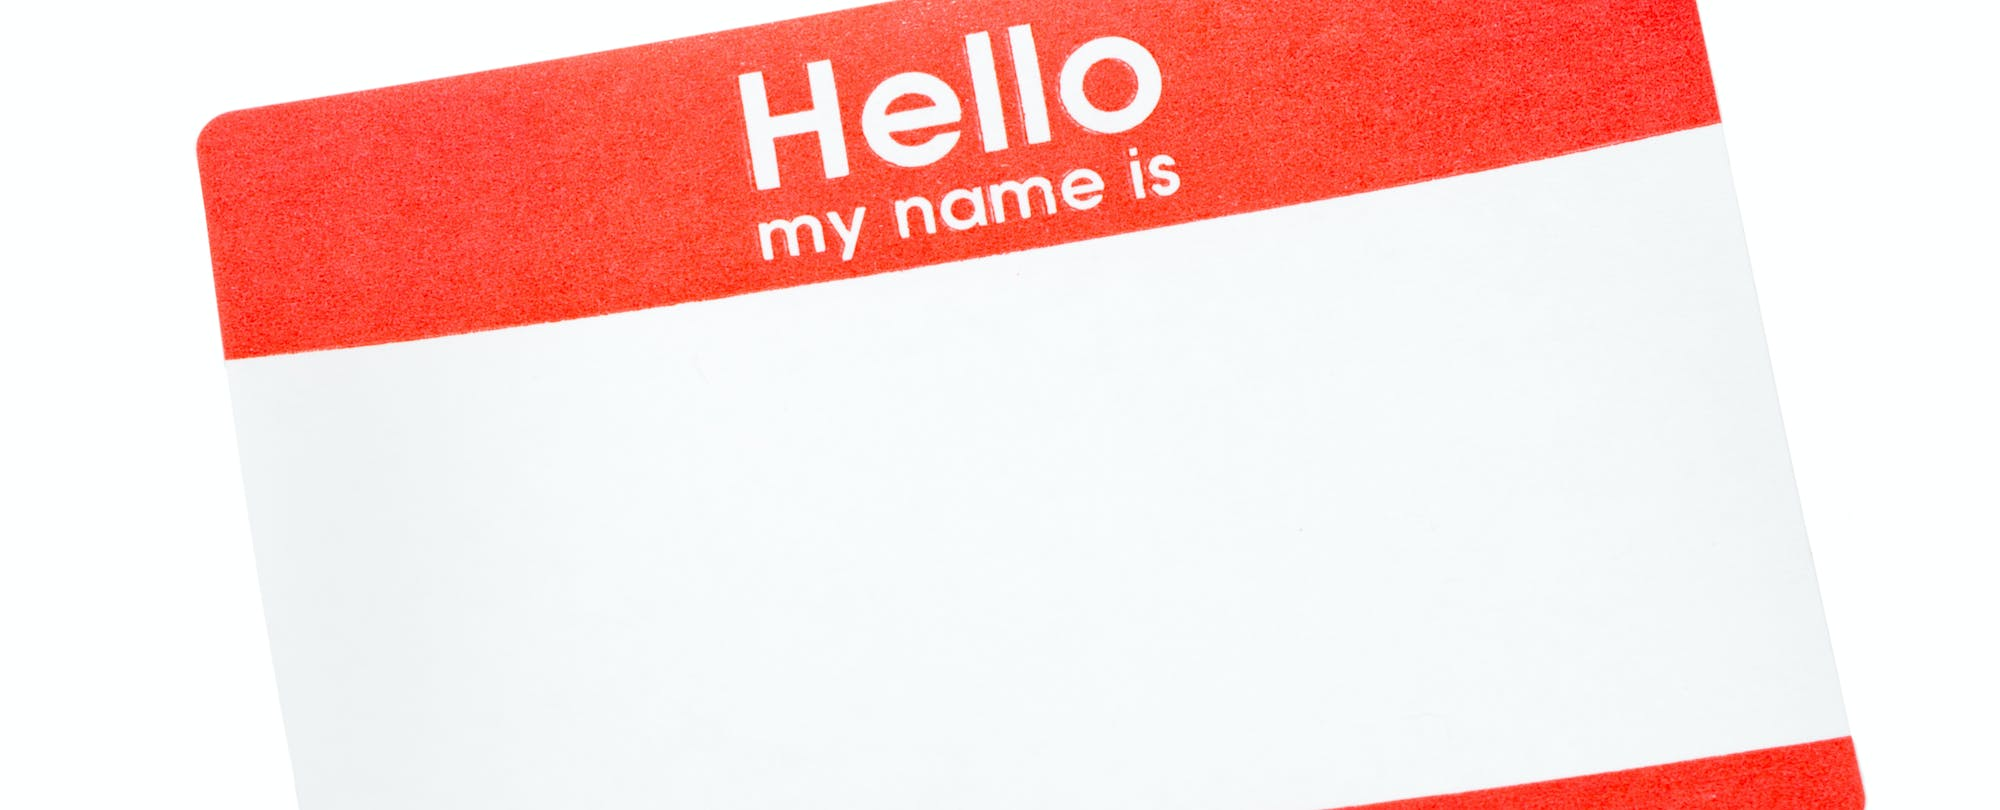 Software Helps Instructors Stop Mangling Hard-to-Pronounce Student Names